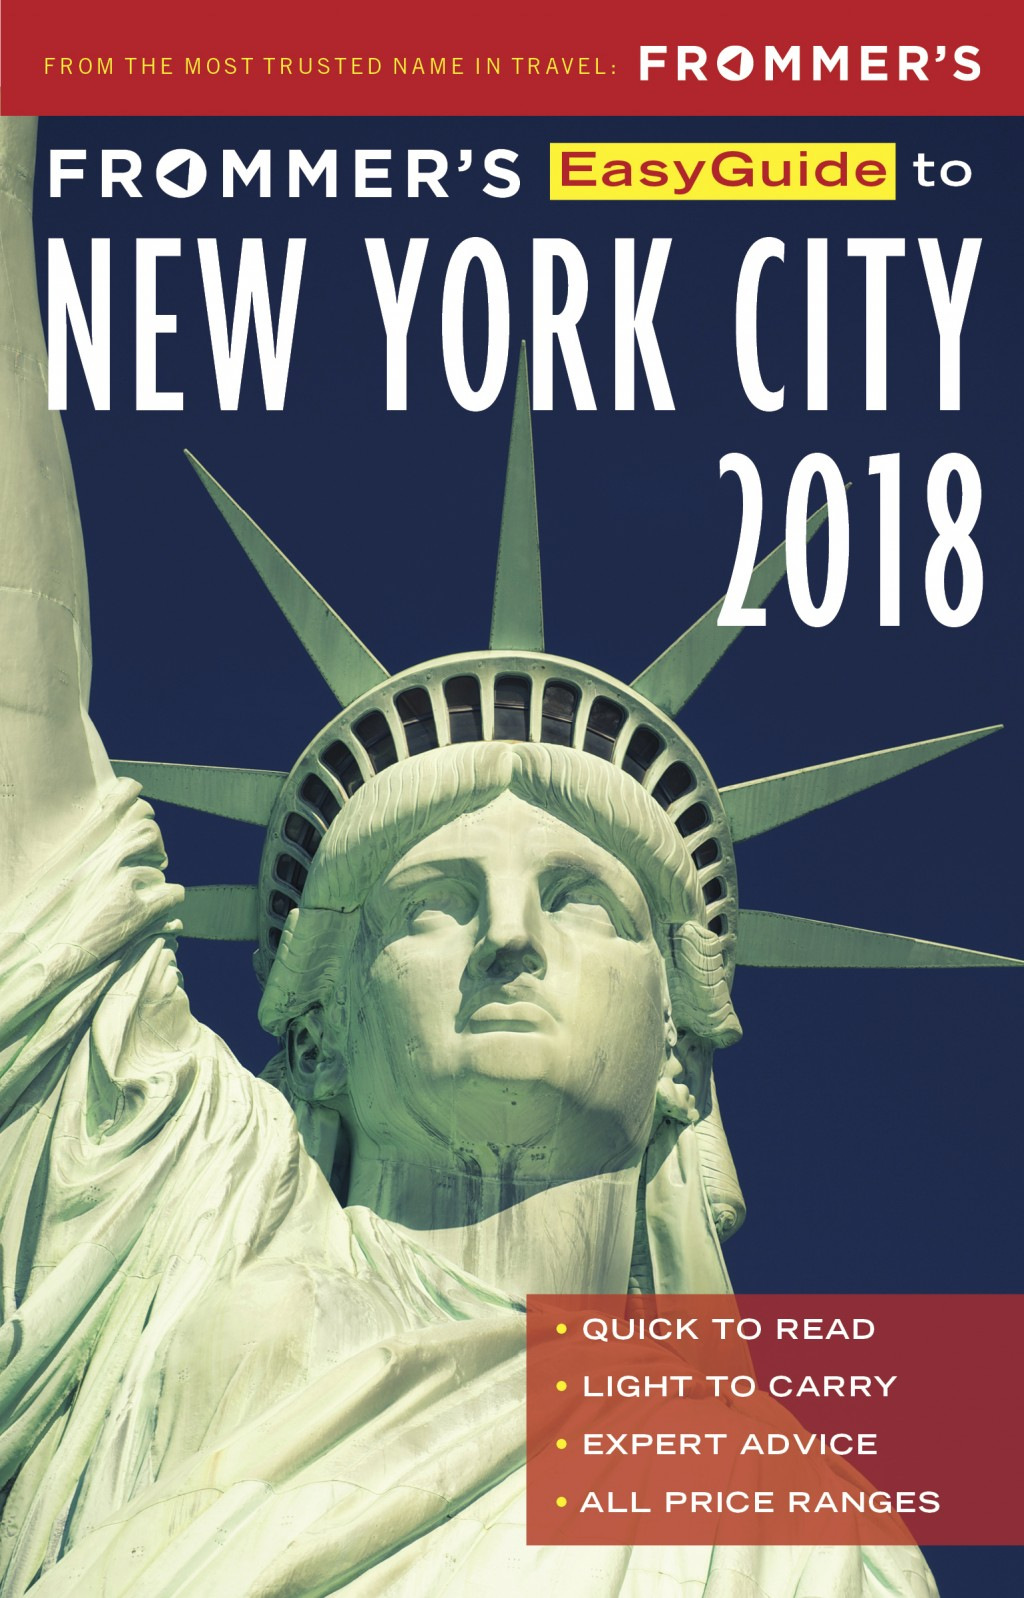 This photo provided by Frommer Media LLC shows the cover of the Frommer's Easy Guide NYC 2018 guidebook. The book helps readers plan a visit to the Bi...